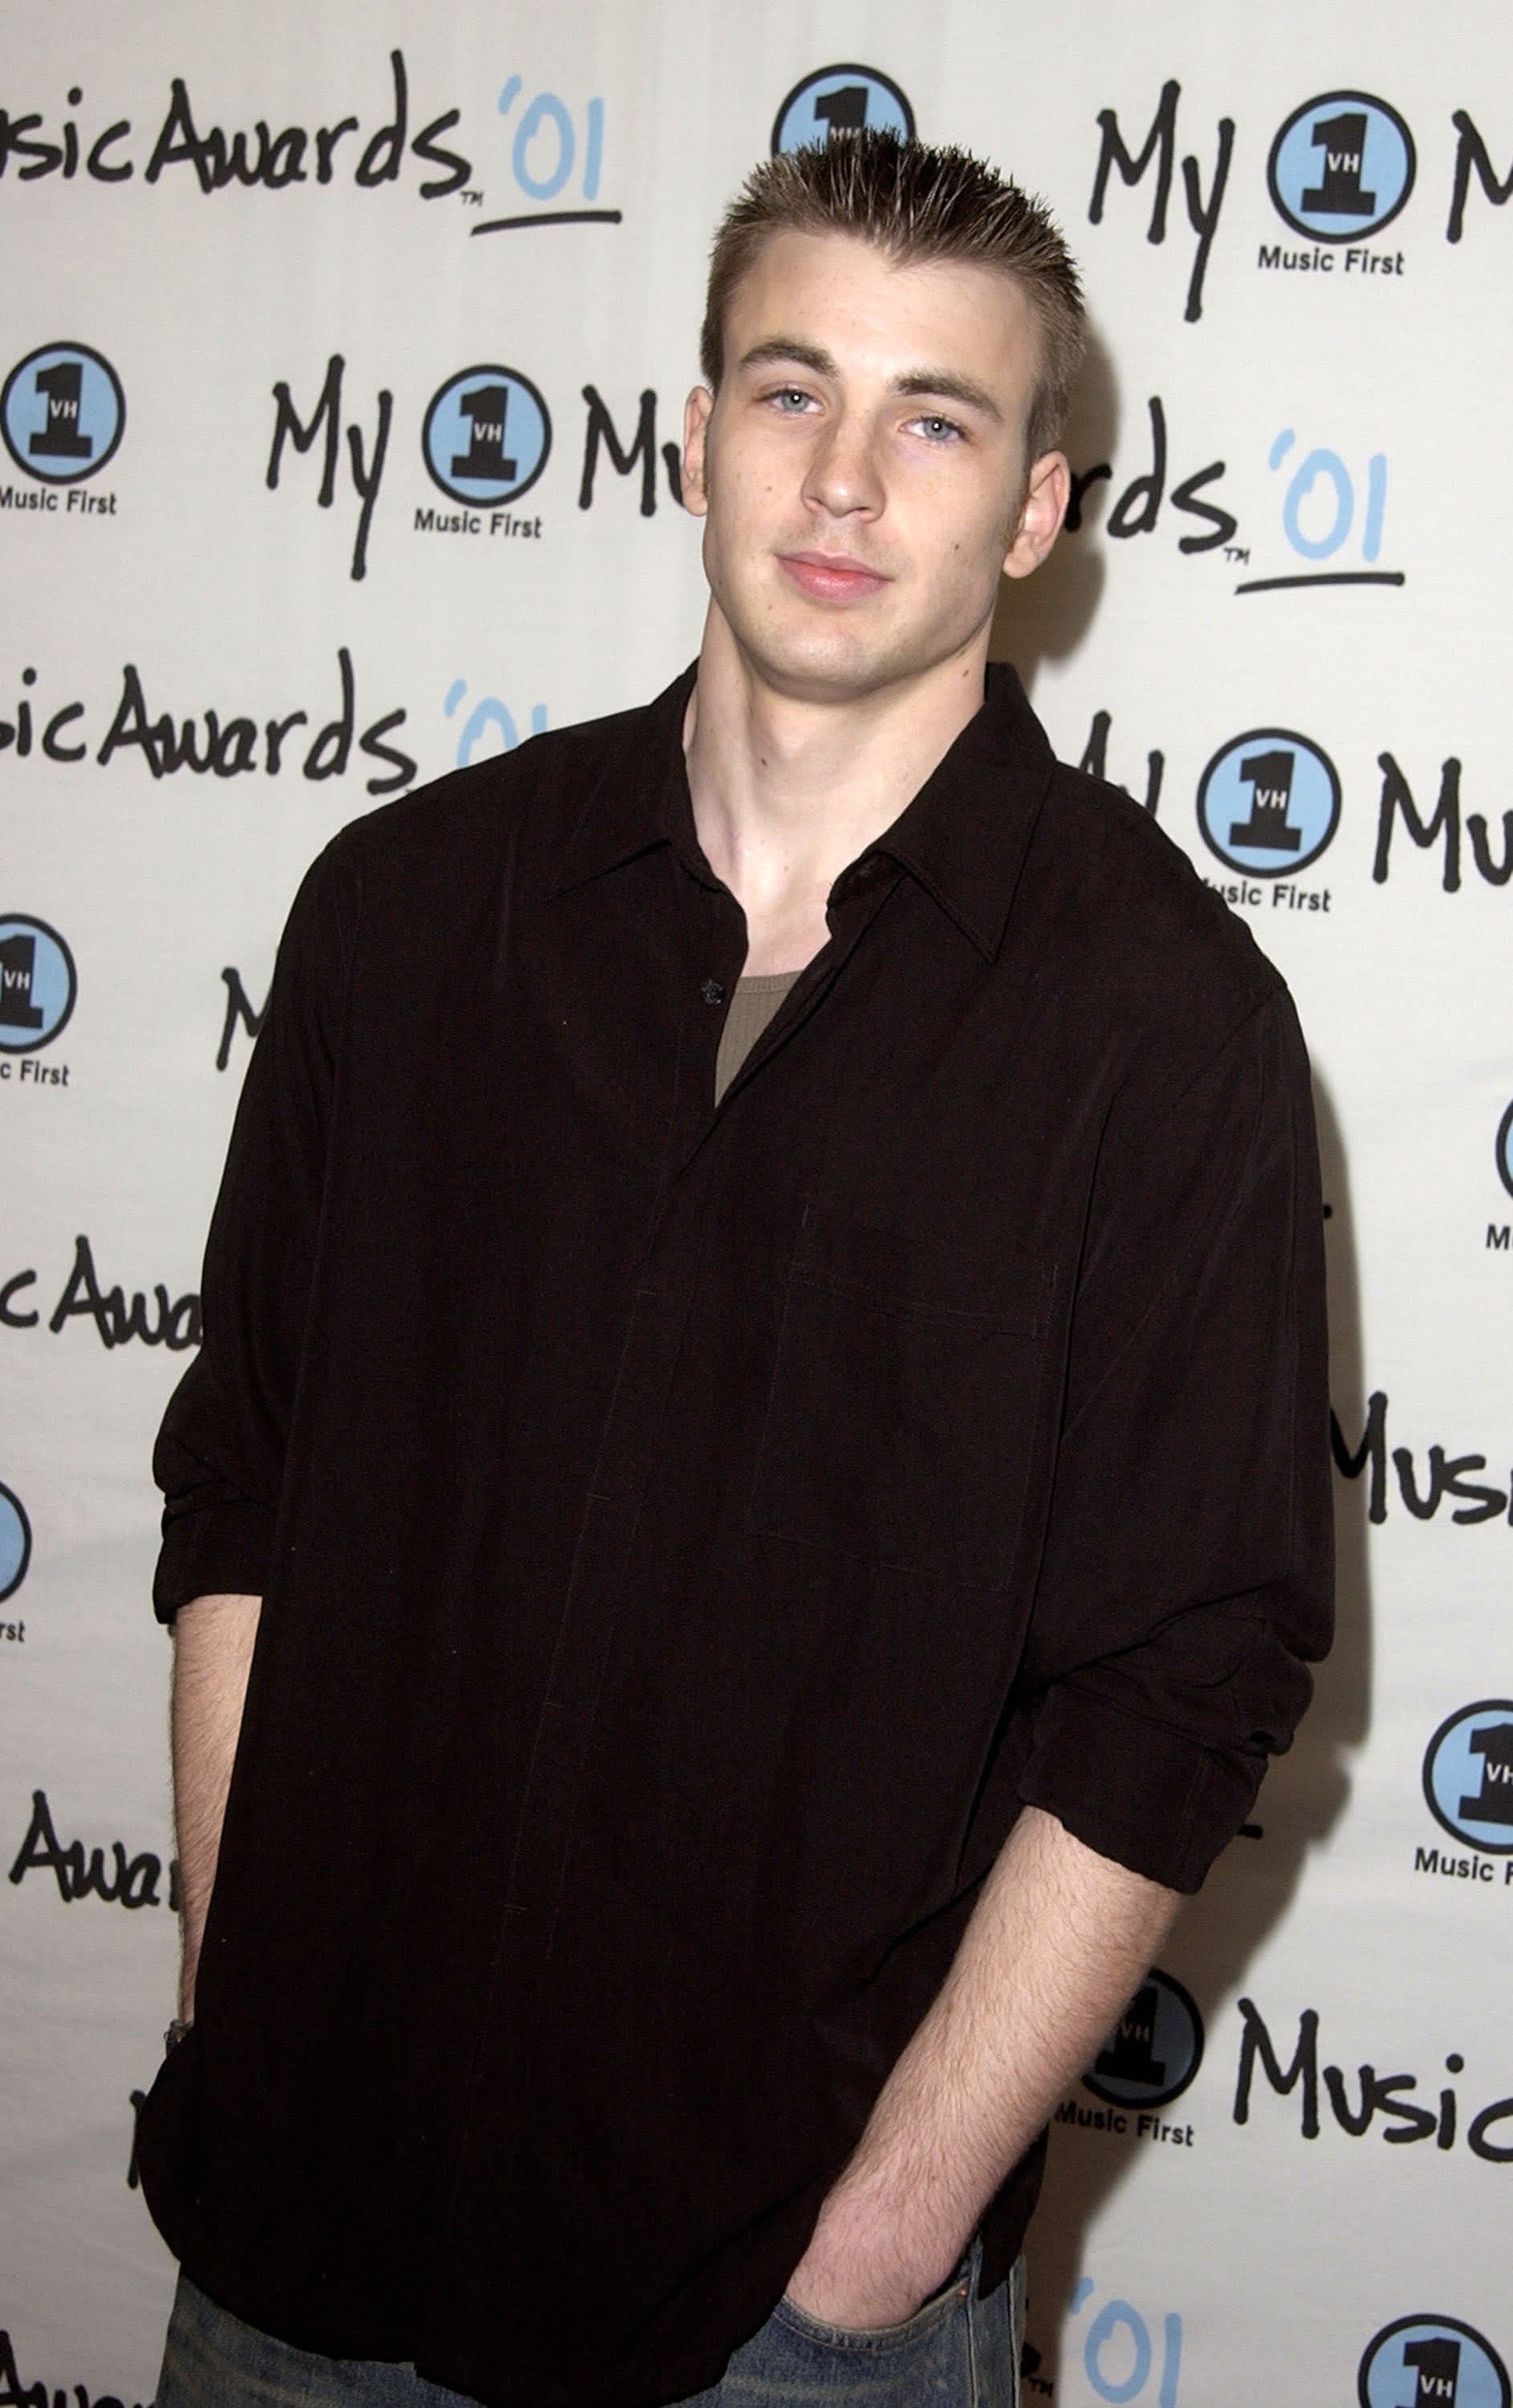 Evans at the VH1 Music Awards in 2001